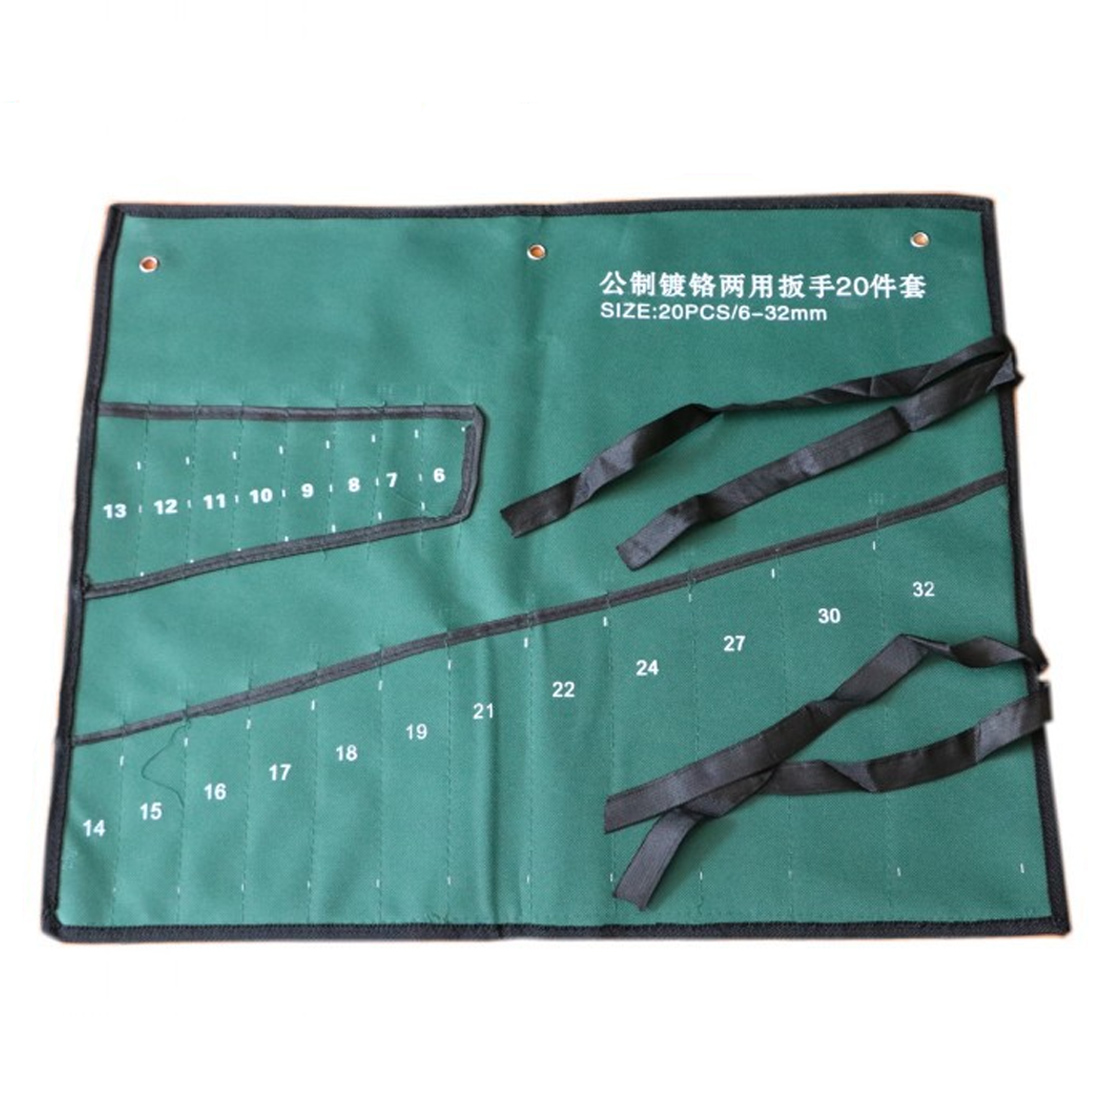 Hardware Kit Pockets Double Opening Offset Ring Spanner Kit Case Tool Bag Spanner Wrench Roll Up Storage Organizer Bag